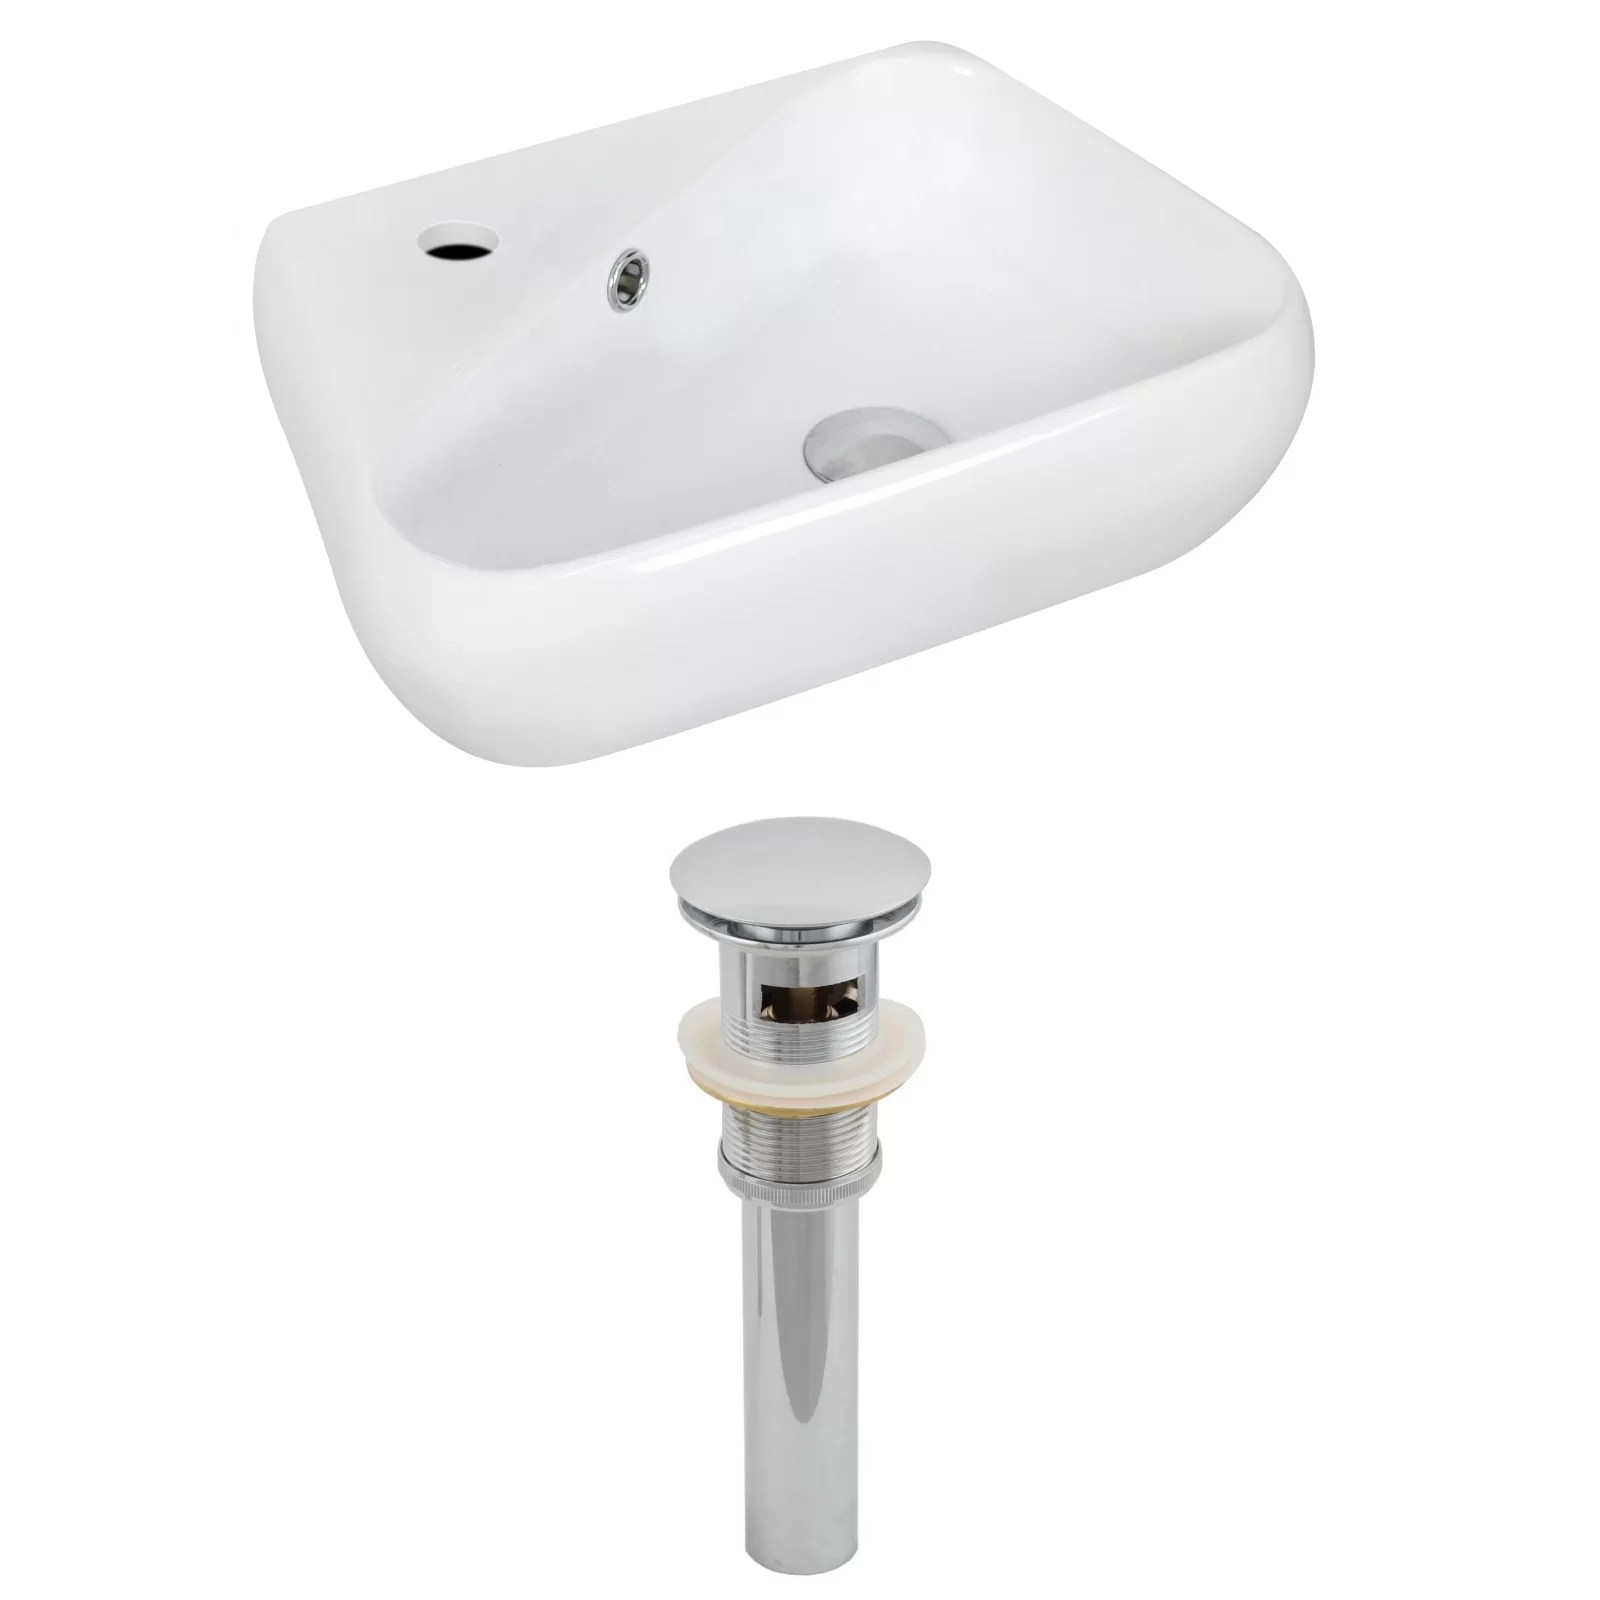 kitchen sink drain pipe walmart islands sale bathroom plumbing ptrap and jbend household hints for royalpurplebathkitchen ceramic 18 wall mount with overflow wayfair